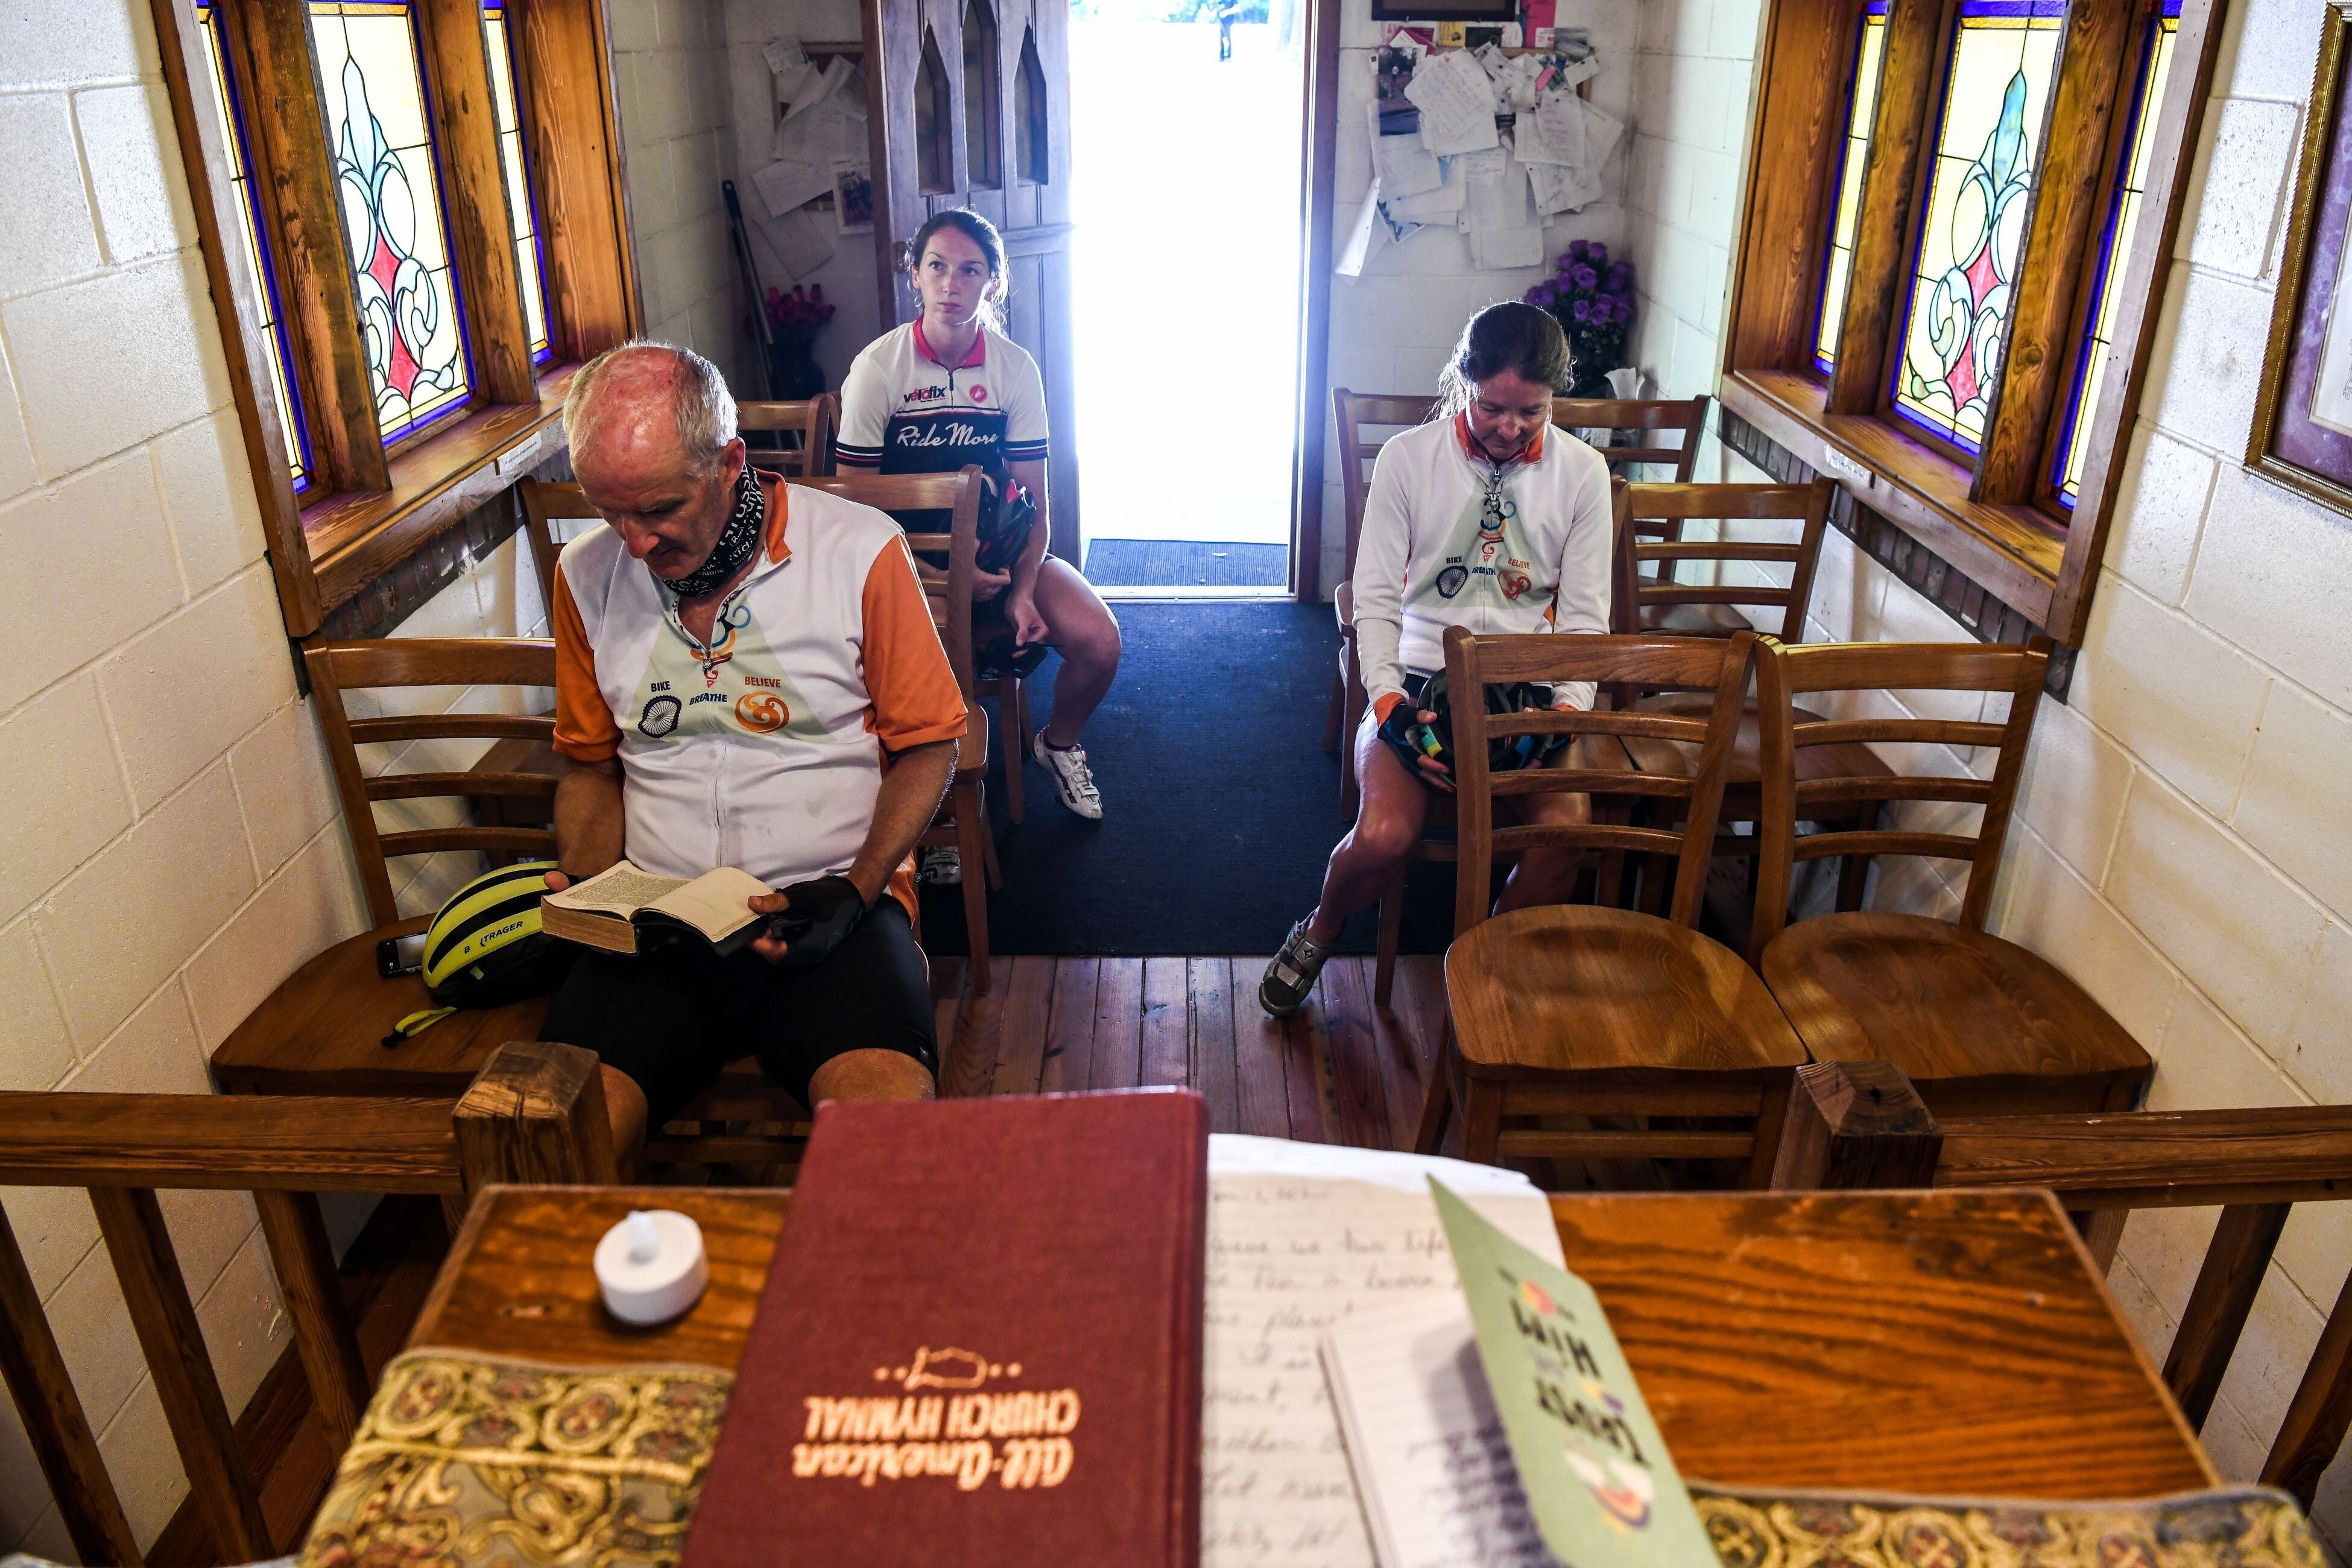 """Worshippers offer prayers inside the """"Smallest Church In America"""" in Townsend, Georgia, during the novel coronavirus pandemic"""